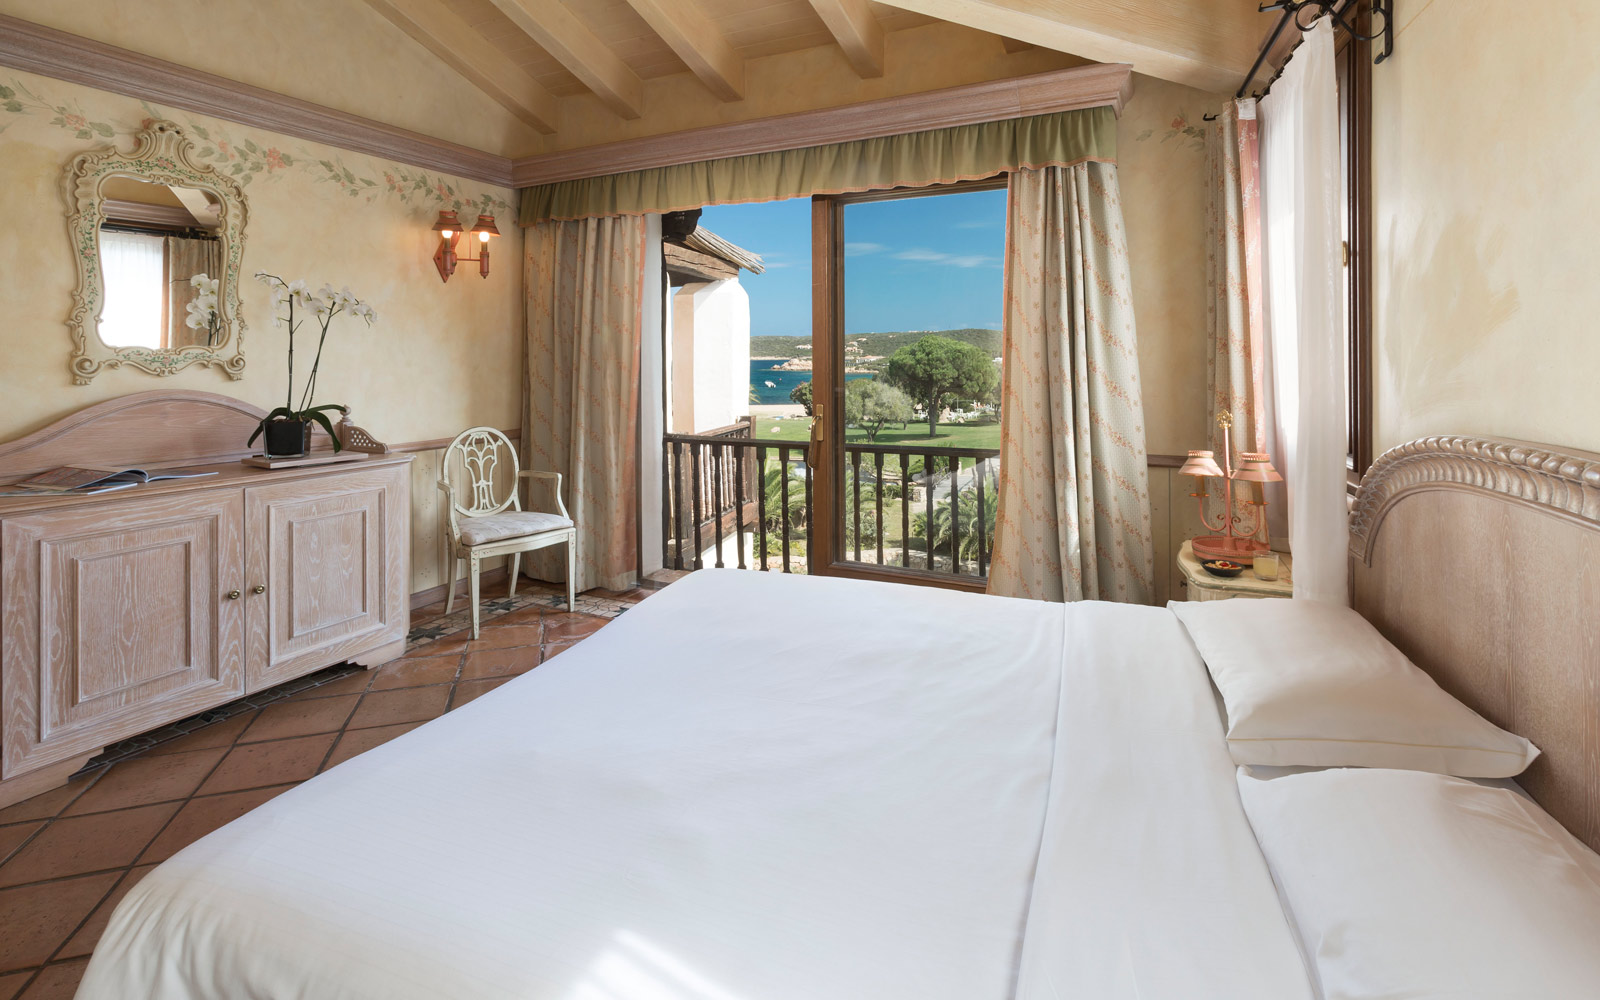 Deluxe Room at Le Palme